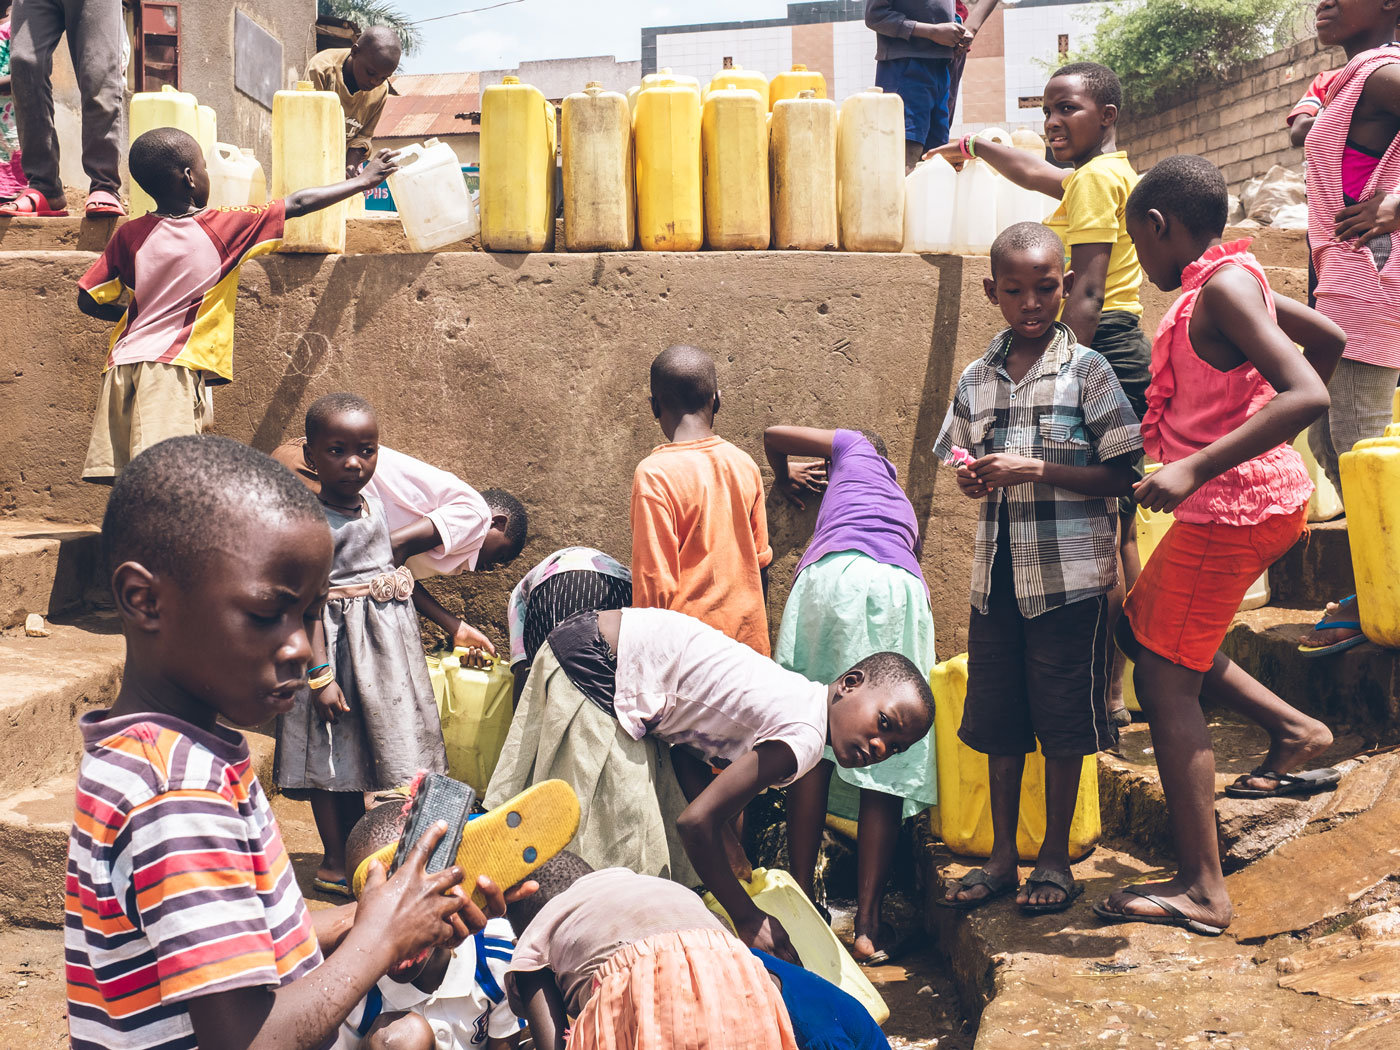 seeking safe water solutions in the slums of sub saharan africa